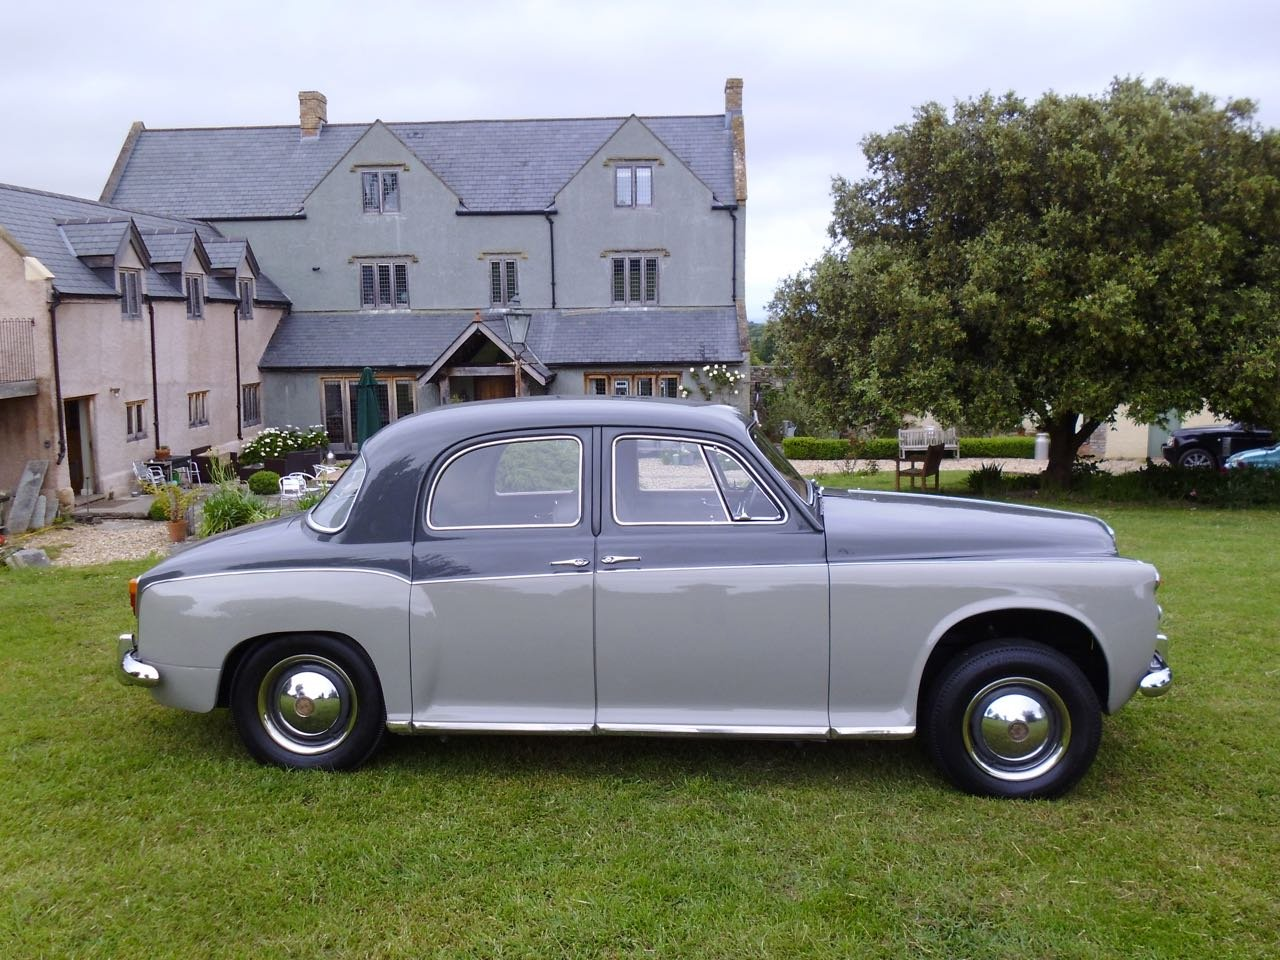 1958 Rover P4 75 six cylinder saloon For Sale (picture 3 of 6)